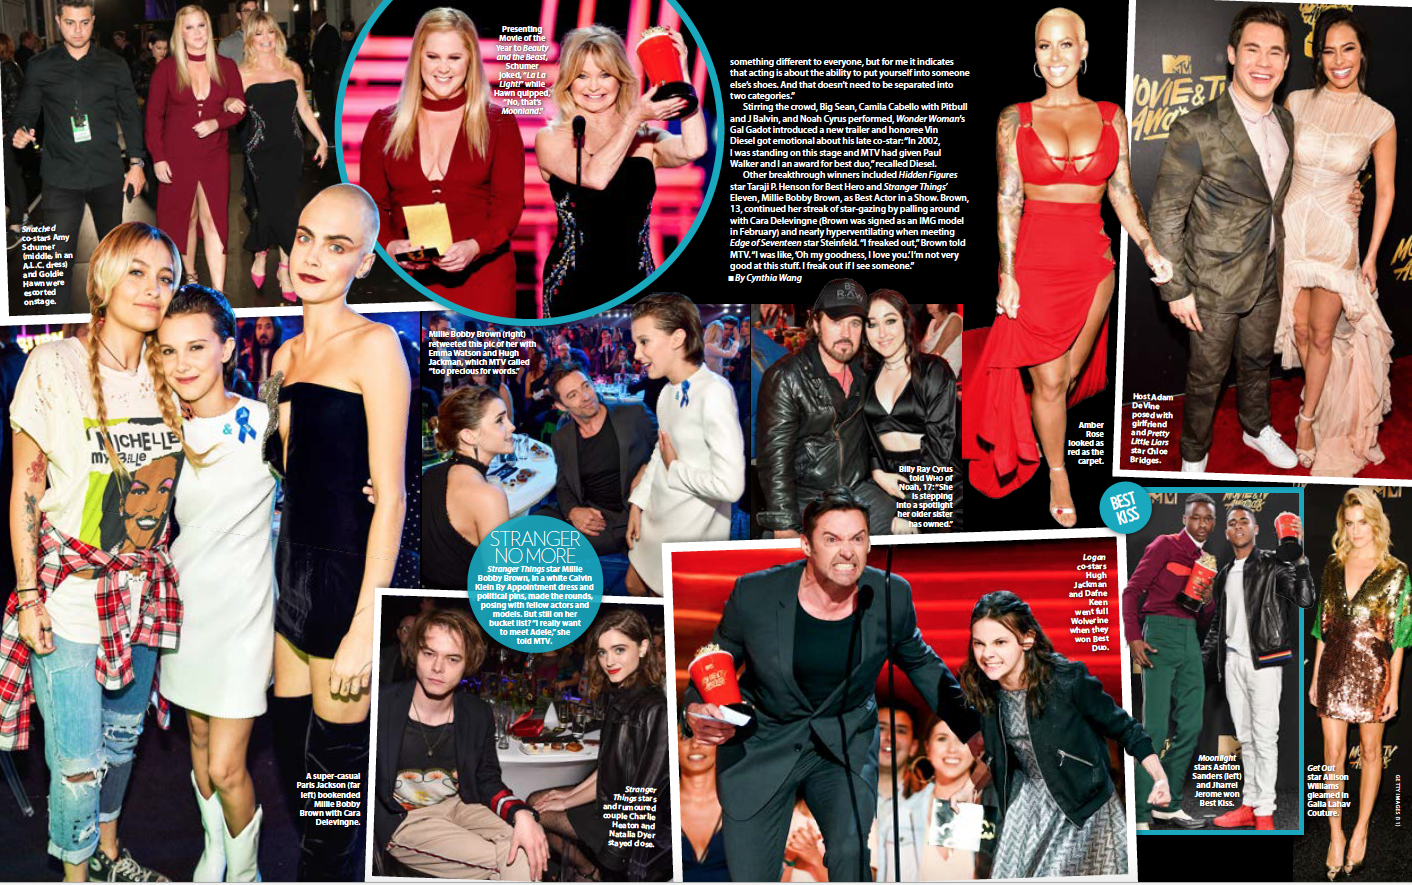 MTVMovieTvAwards17p3.png